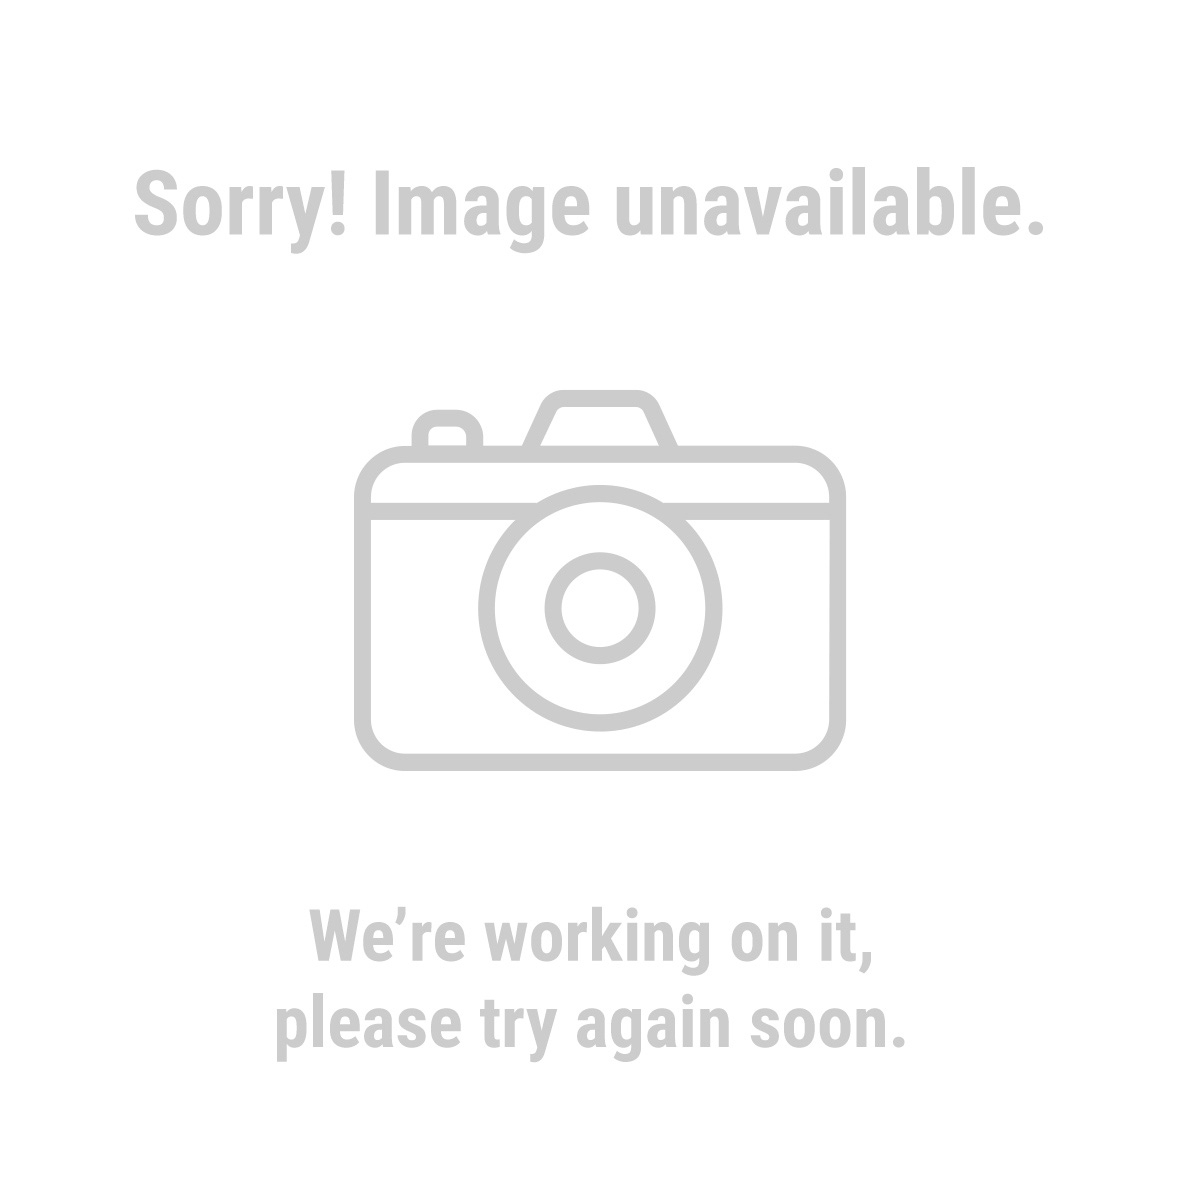 Central-Machinery 60710 350 lb. Capacity Folding Sawhorse